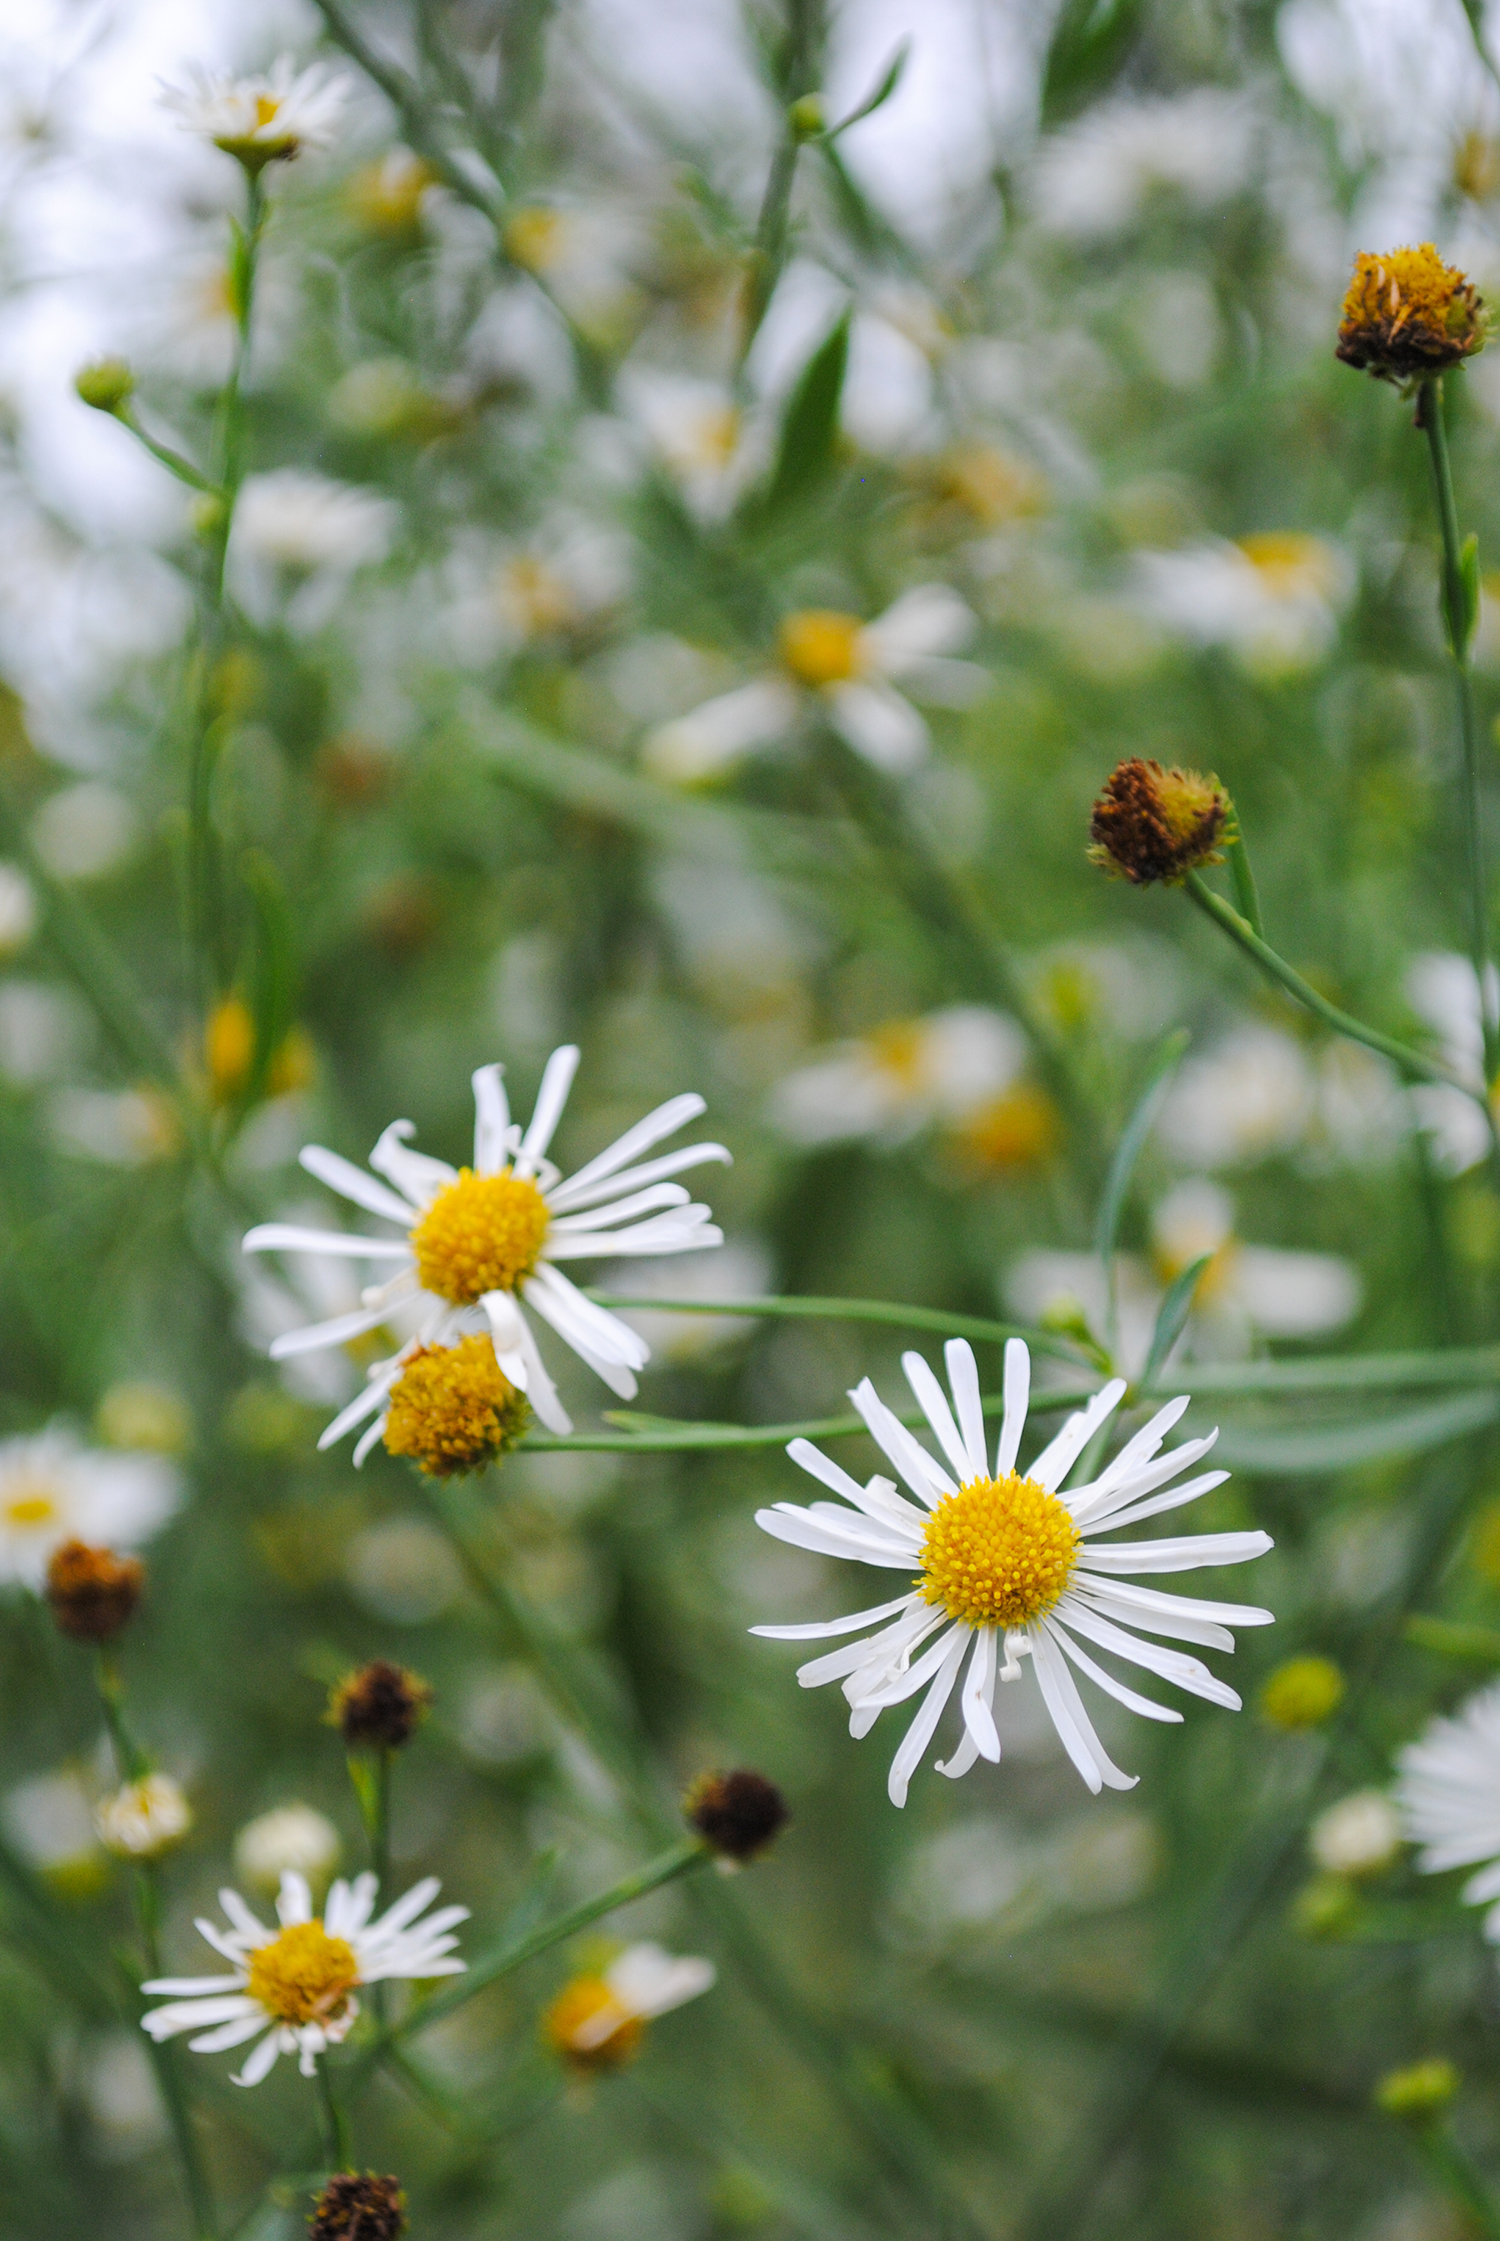 Close up of  Boltonia asteroides  flowers. Once they begin to fade, the ray florets rain down and cover the ground like little white sprinkles. Or, your arm if you brush past the plant.